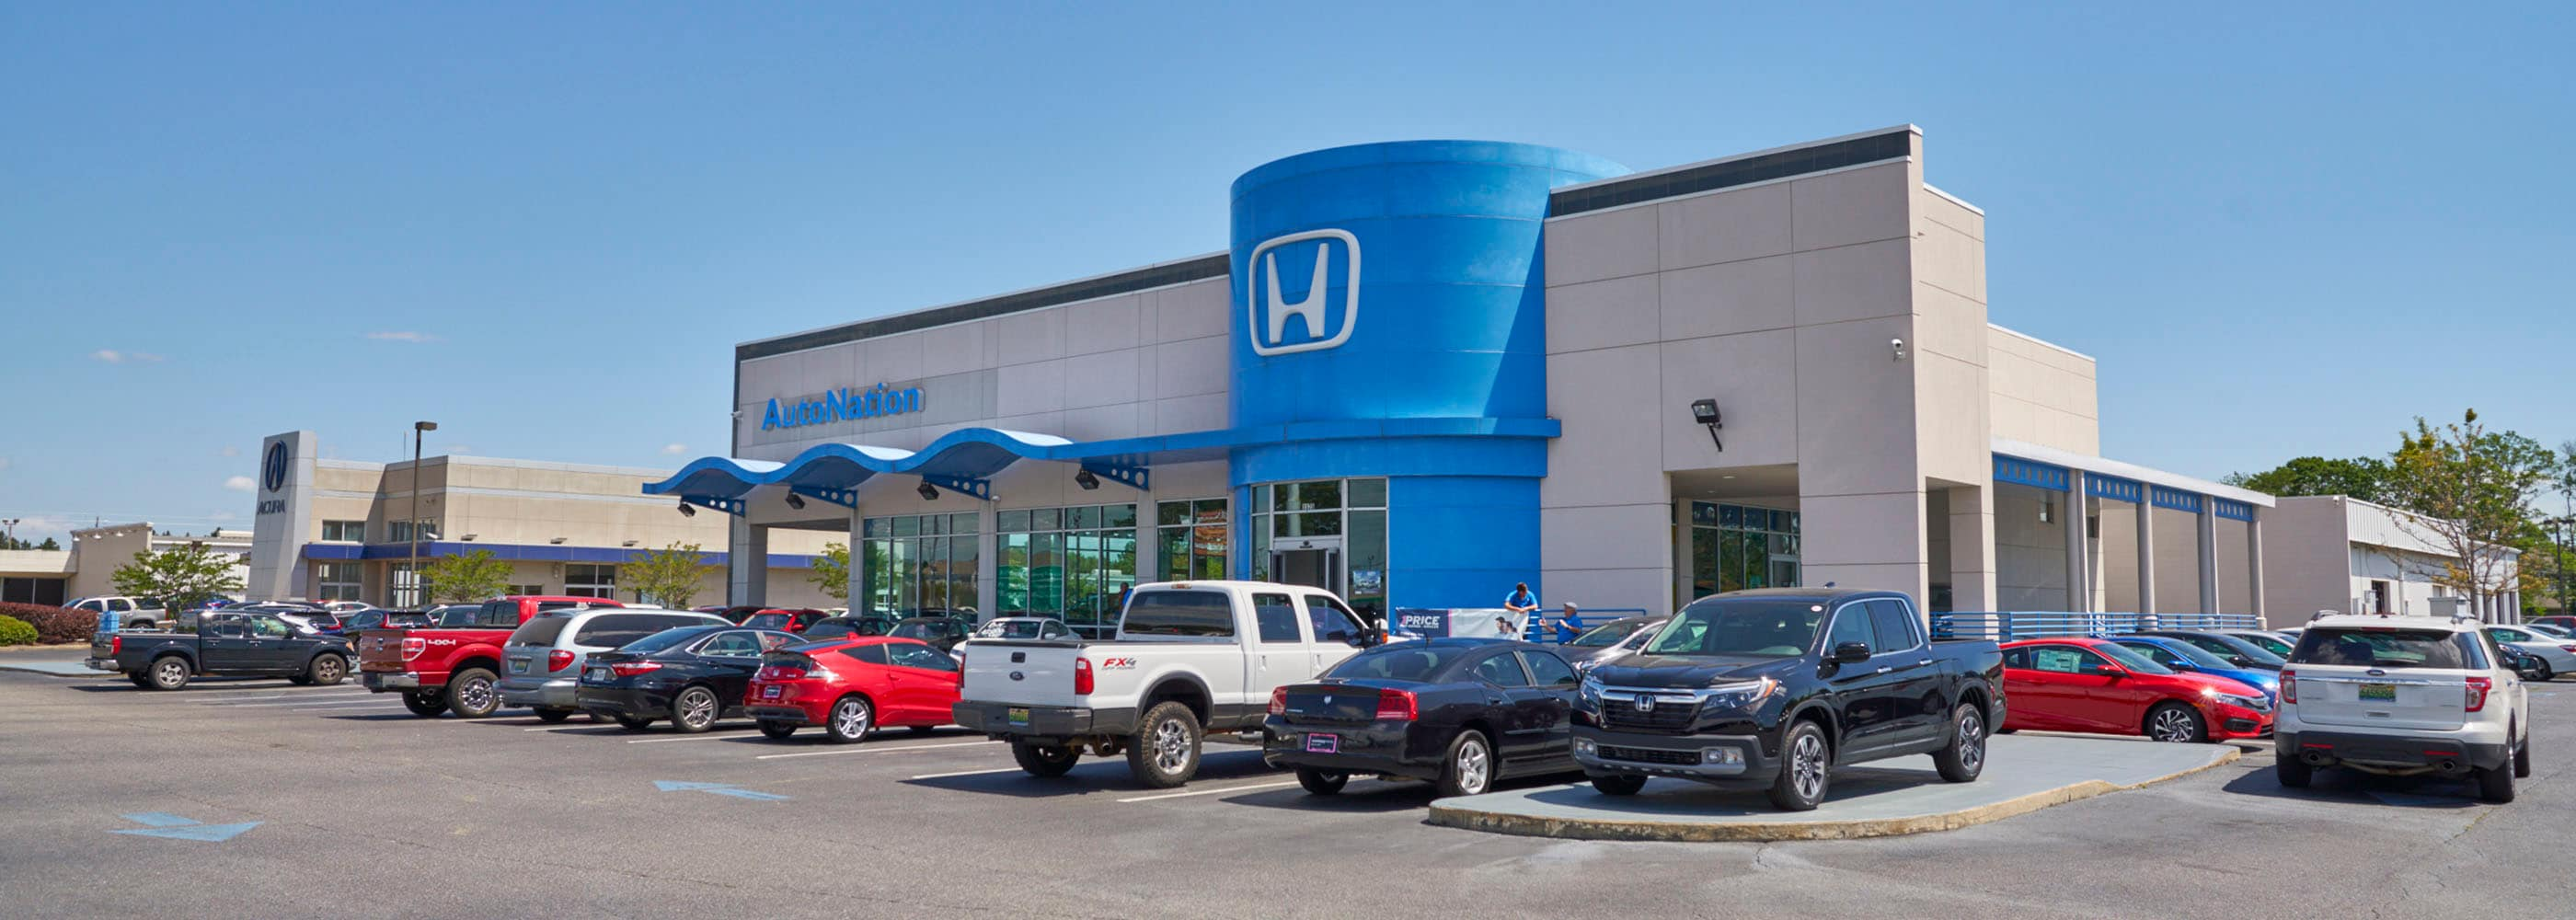 Autonation Honda Tucson Auto Mall Tucson Honda Dealership